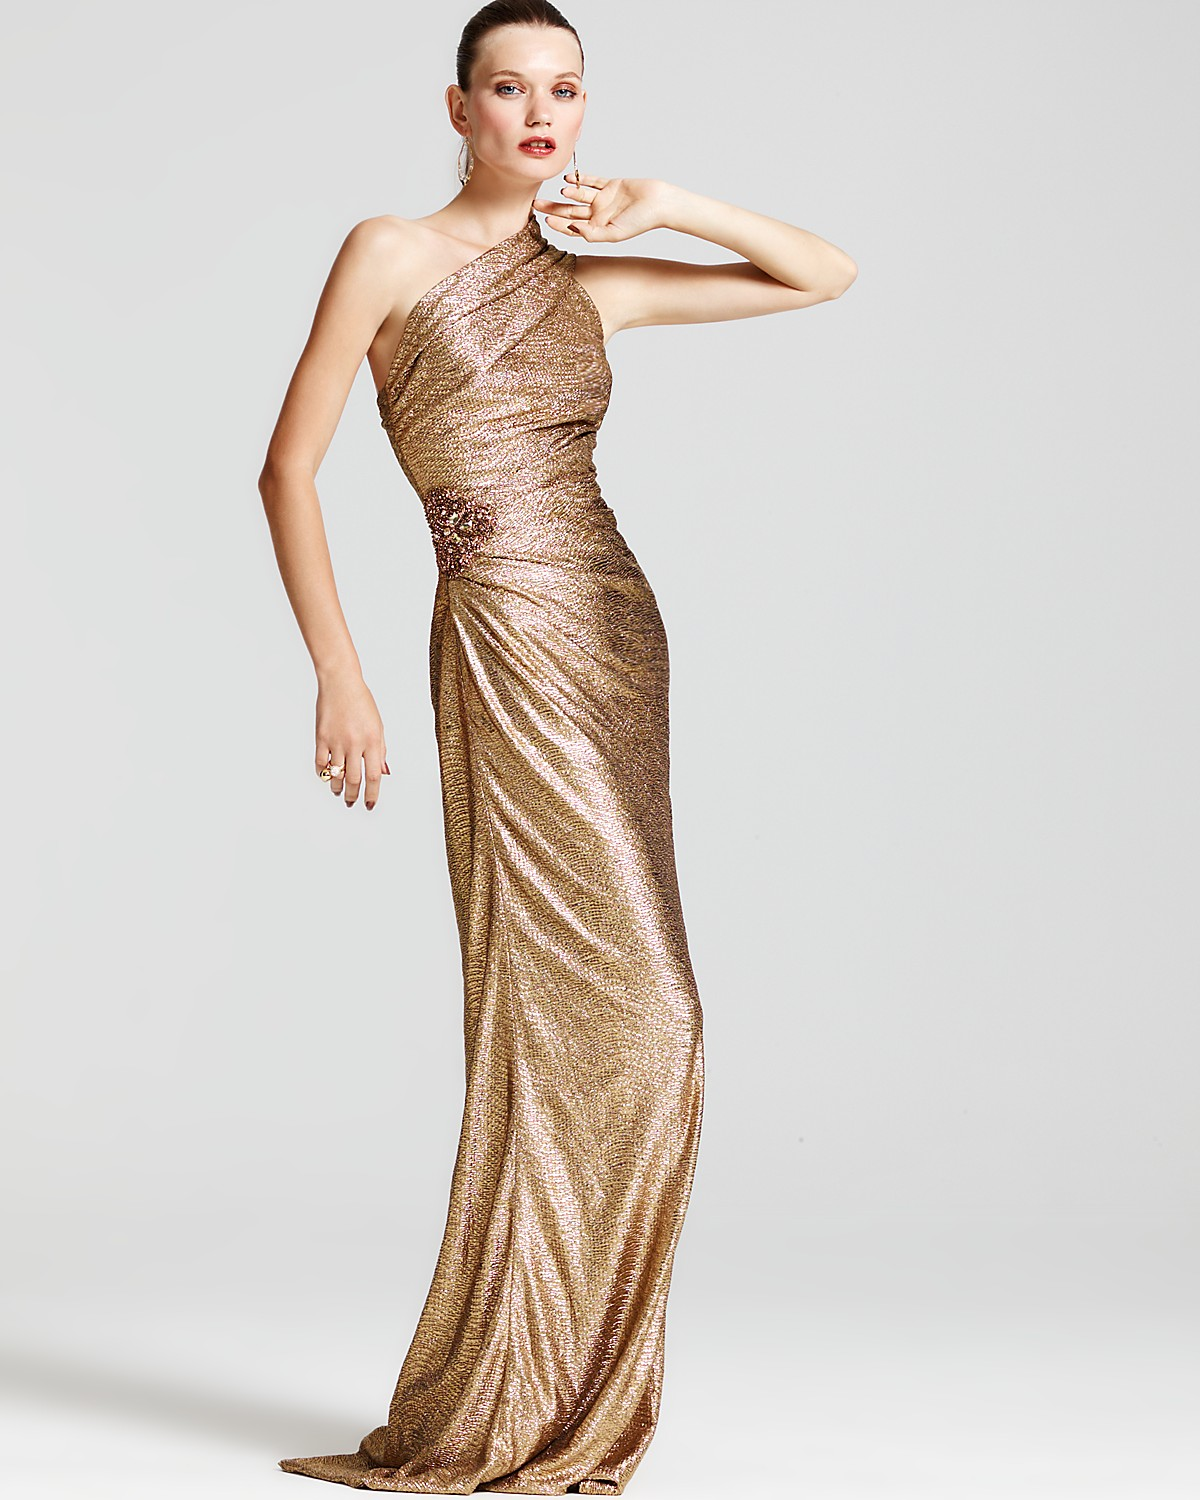 Enchanting David Meister Metallic Gown Embellishment - Images for ...